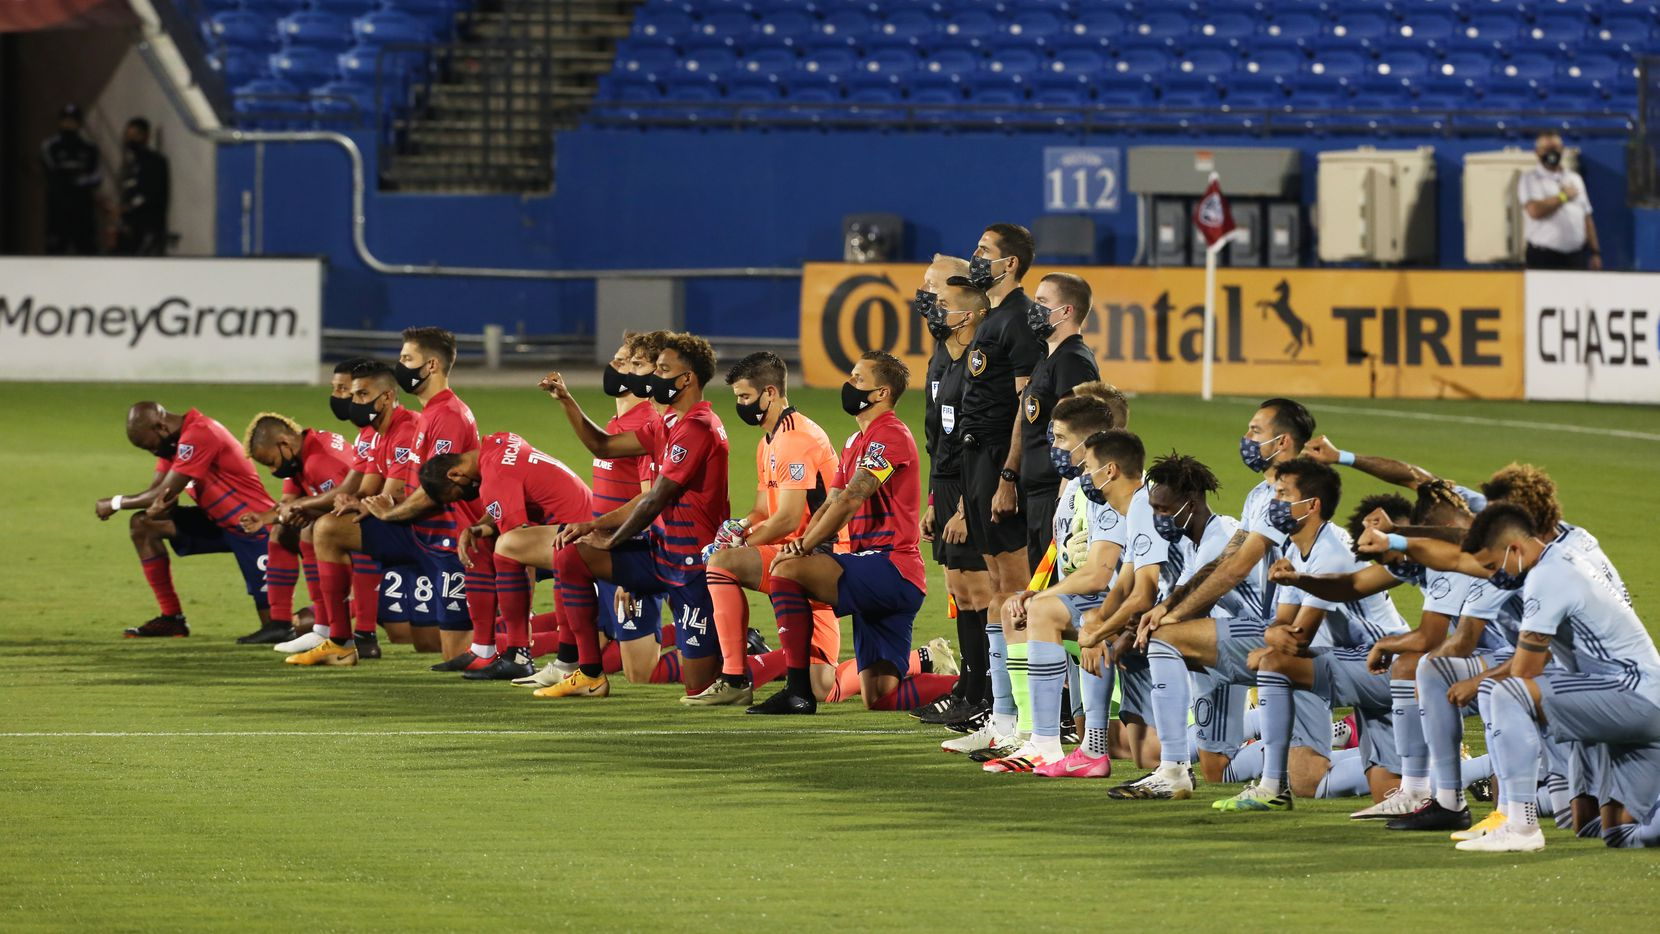 FRISCO, TX - OCTOBER 3: Players of FC Dallas and Sporting Kansas City teams  kneel during the national anthem prior the MLS Game between FC Dallas and Columbus Crew SC at Toyota Stadium on October 3, 2020 in Frisco, Texas.